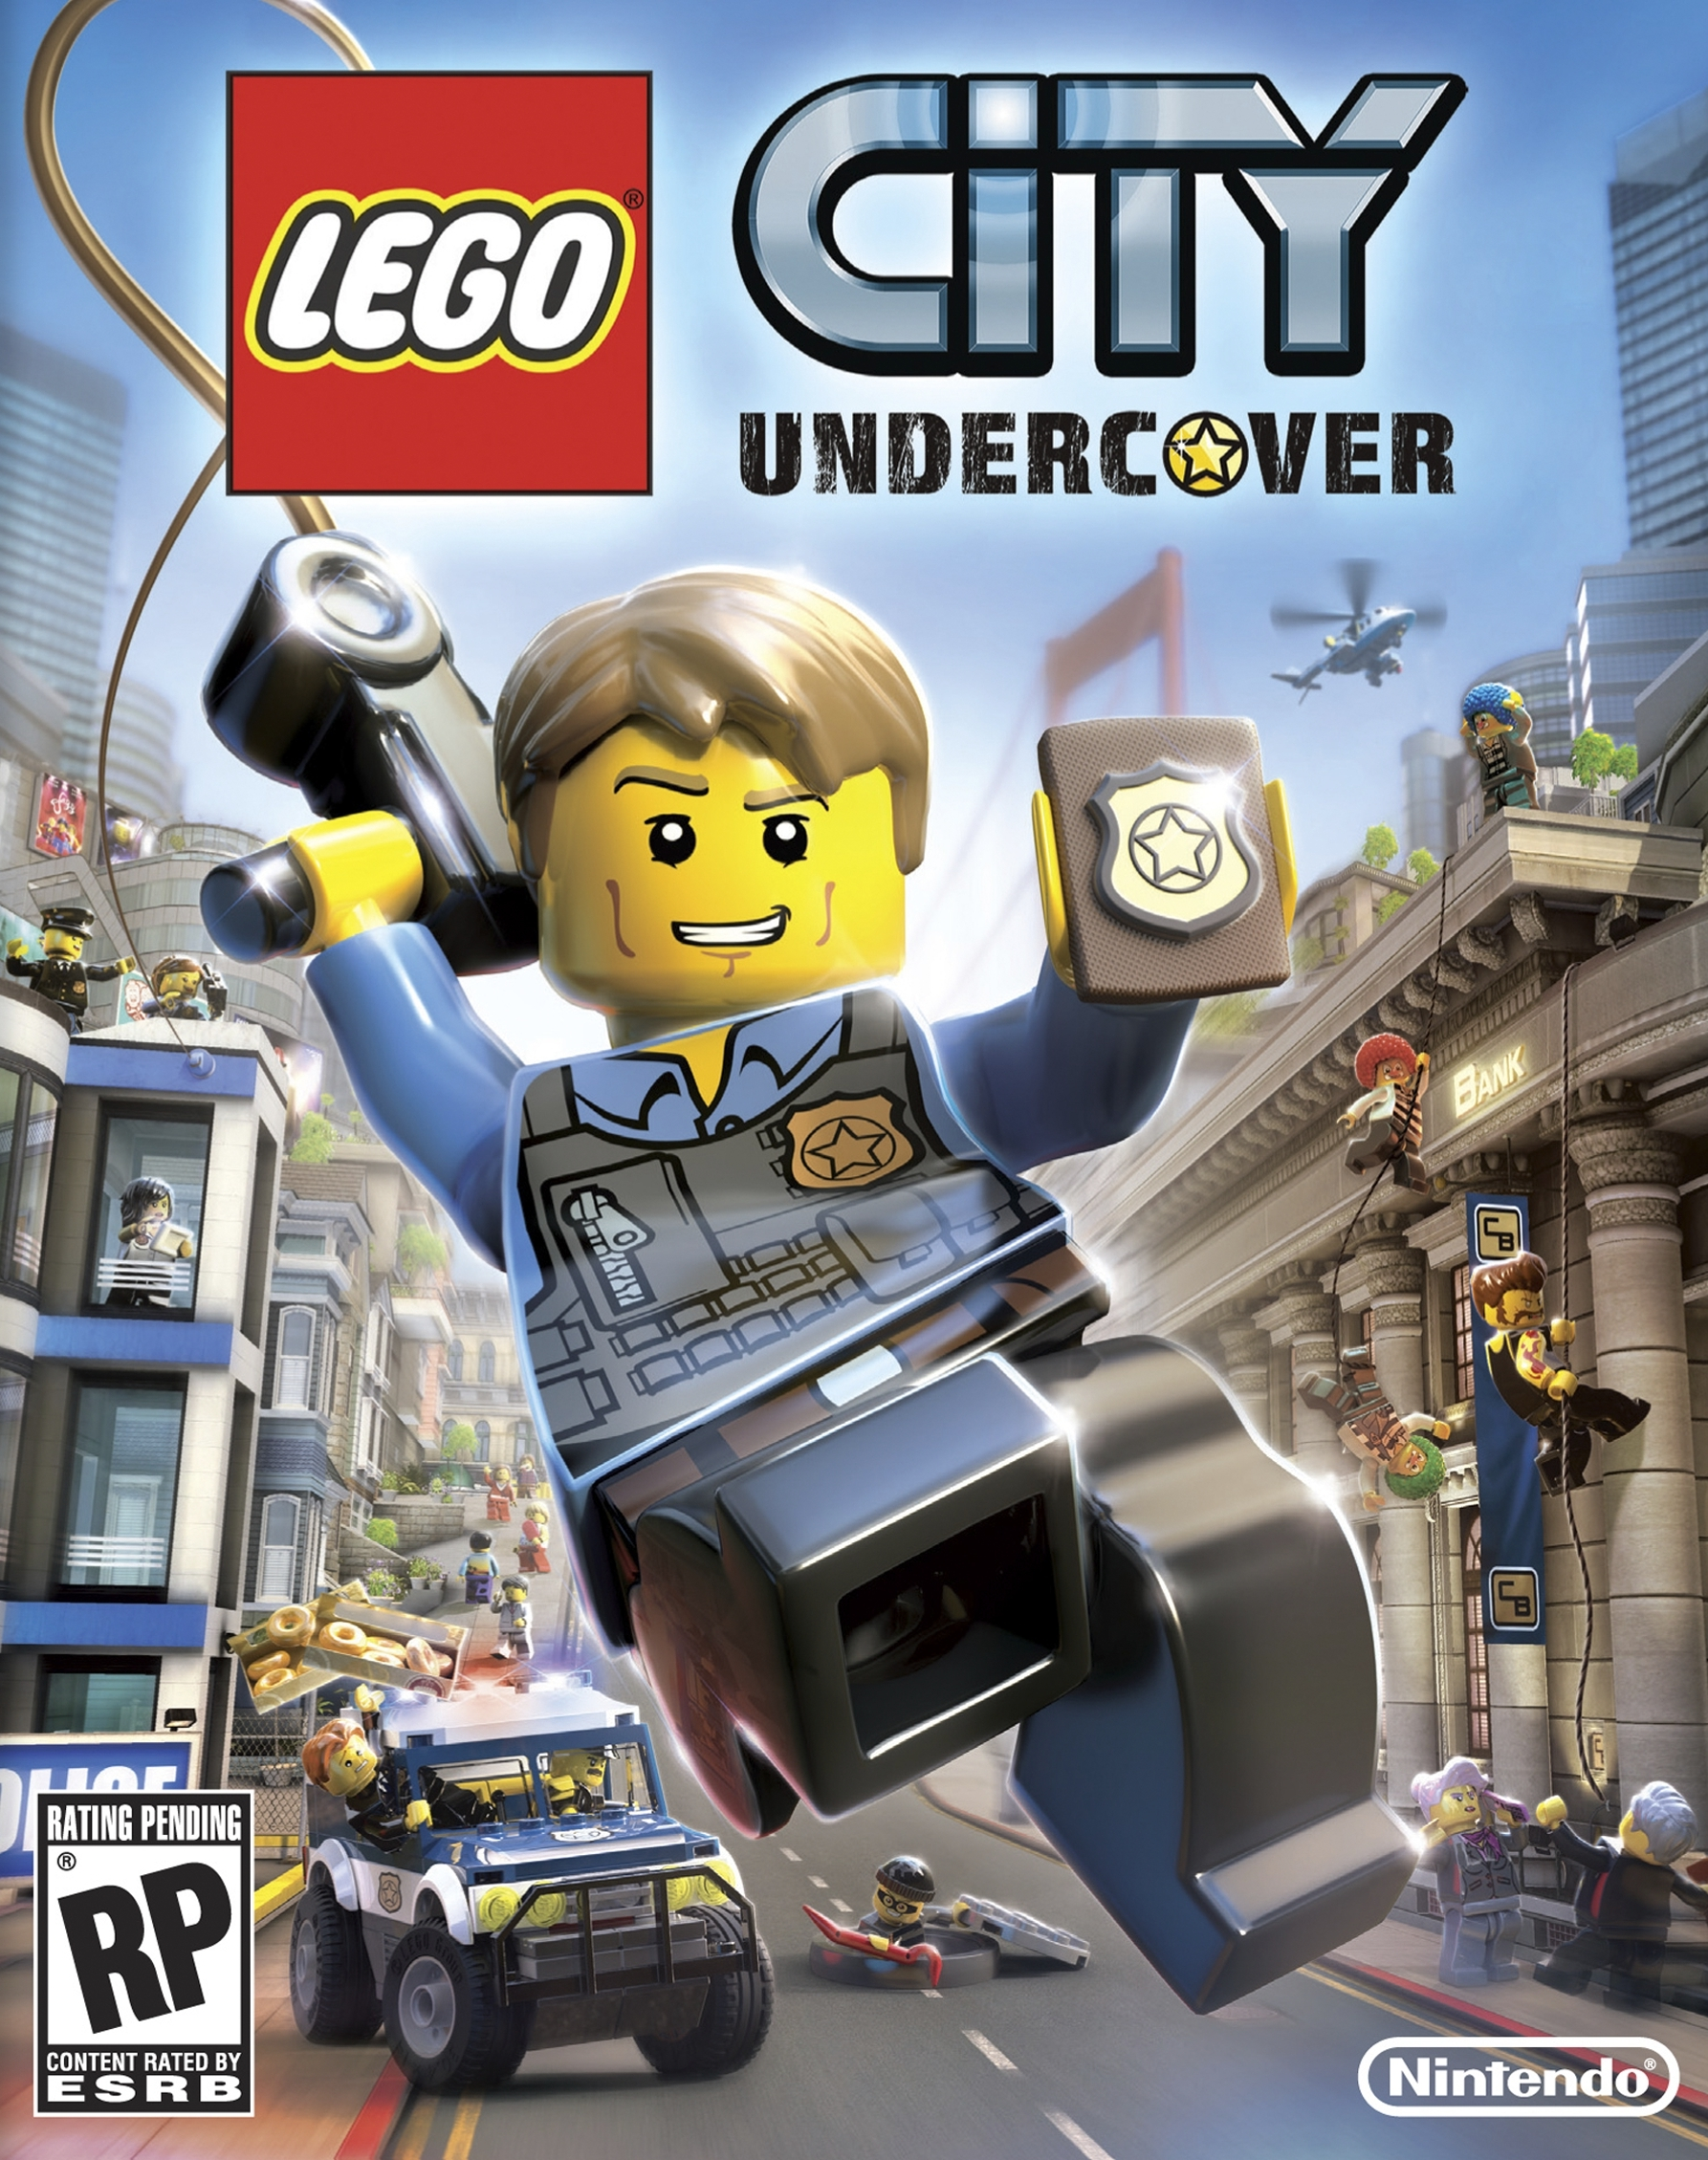 Lego City Undercover Video Game Cheat Codes Wiki Fandom Powered